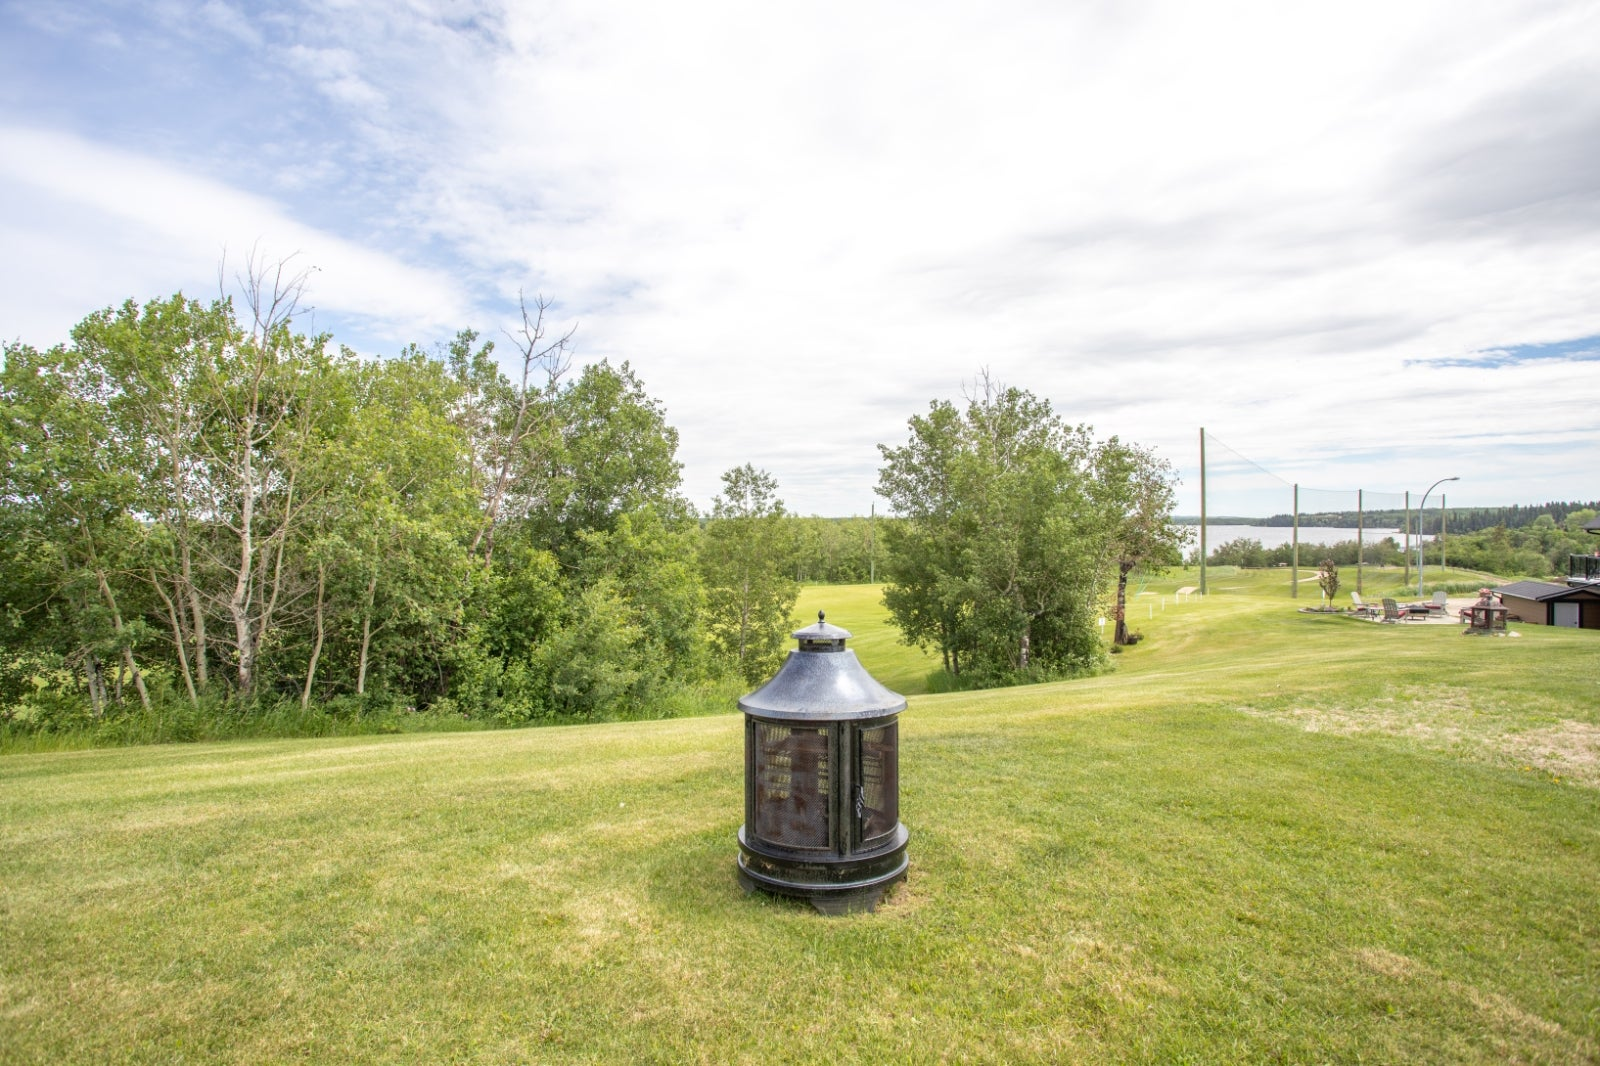 6084, 25054 SOUTH PINE LAKE Road - Whispering Pines Residential Land for sale(A1100818) #6